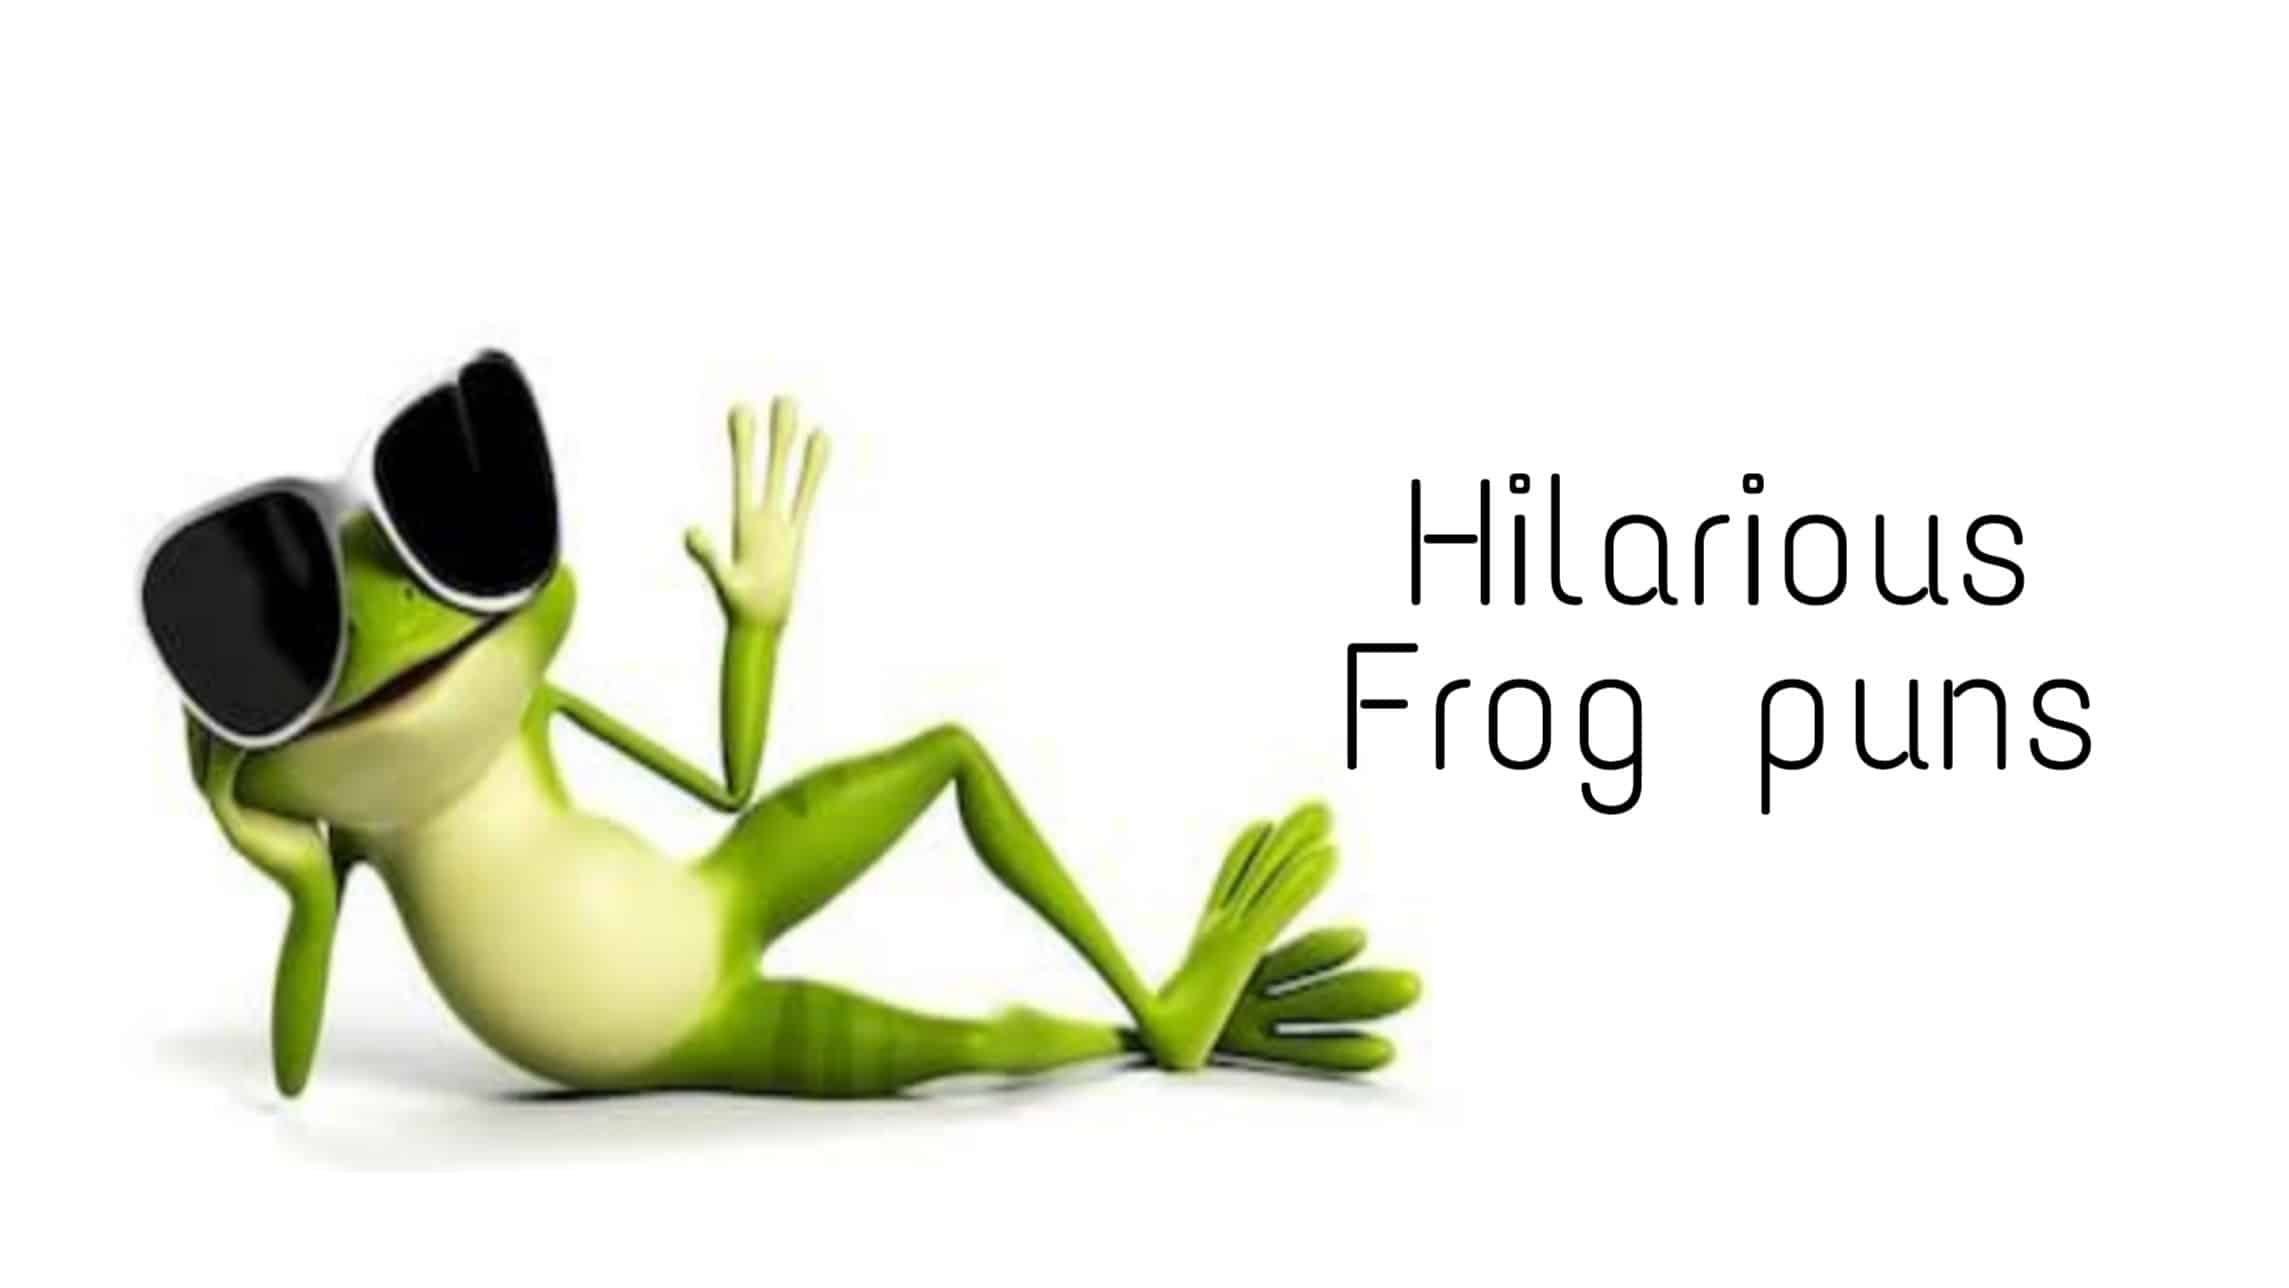 84+ Frog Puns And Jokes To Make You Laugh